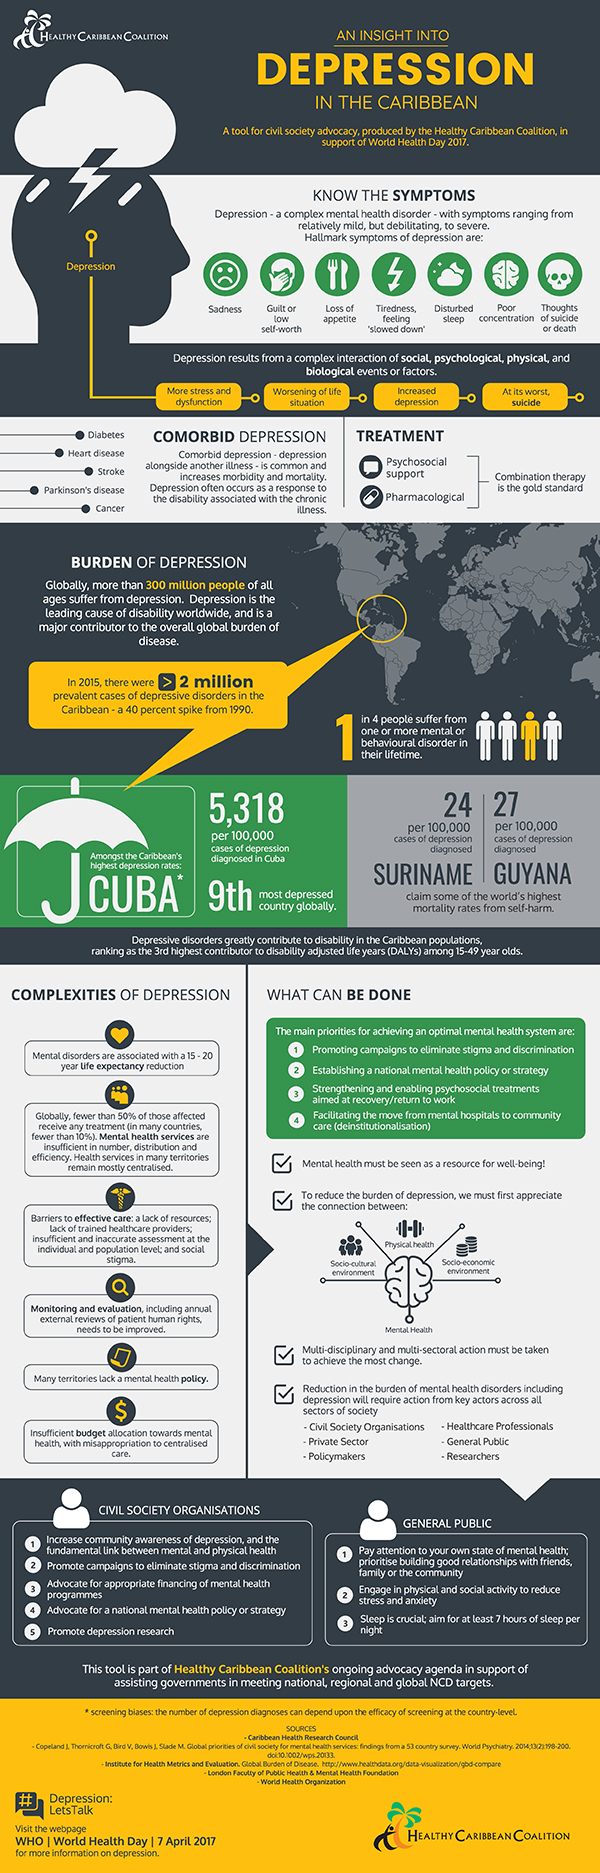 An Insight into Depression in the Caribbean Infographic